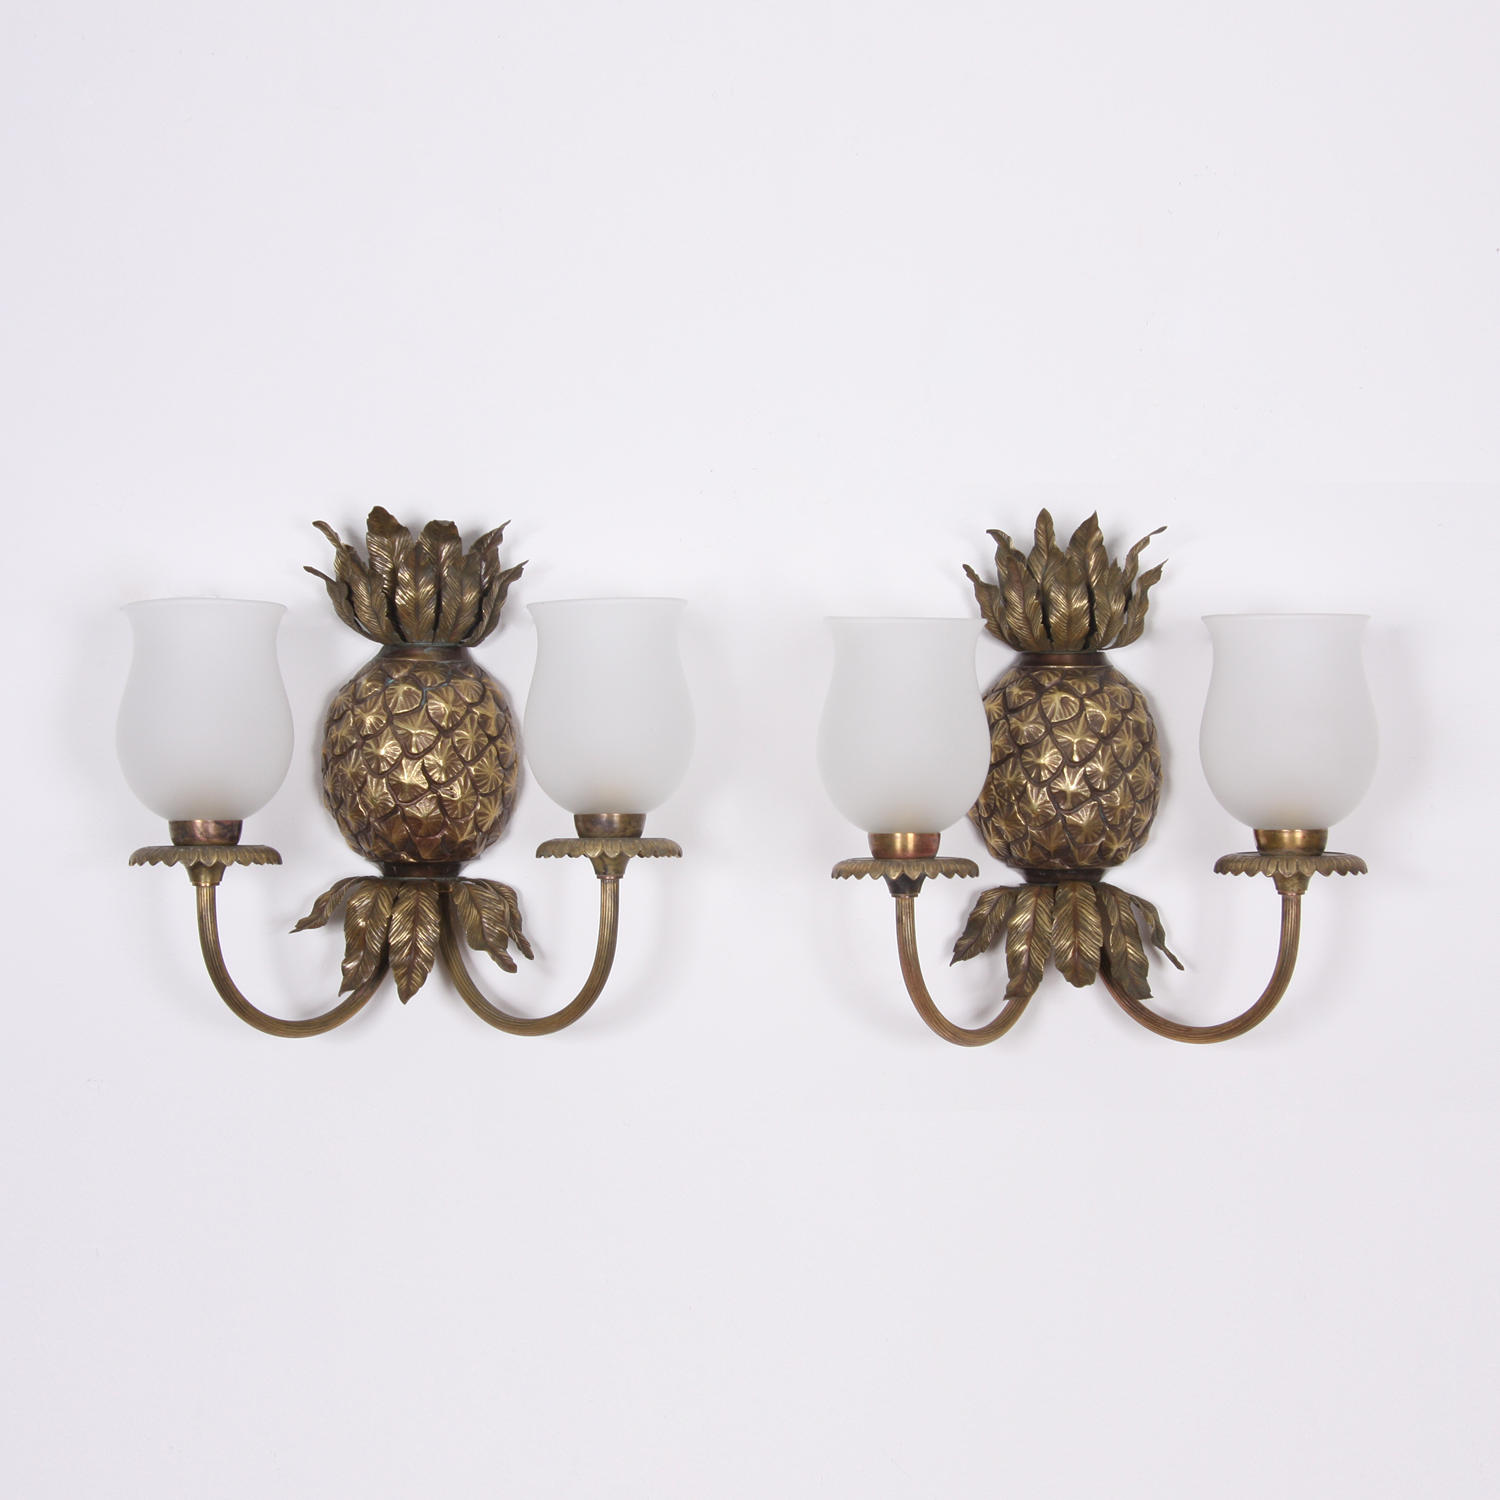 Pair of Maison Charles Wall Lights